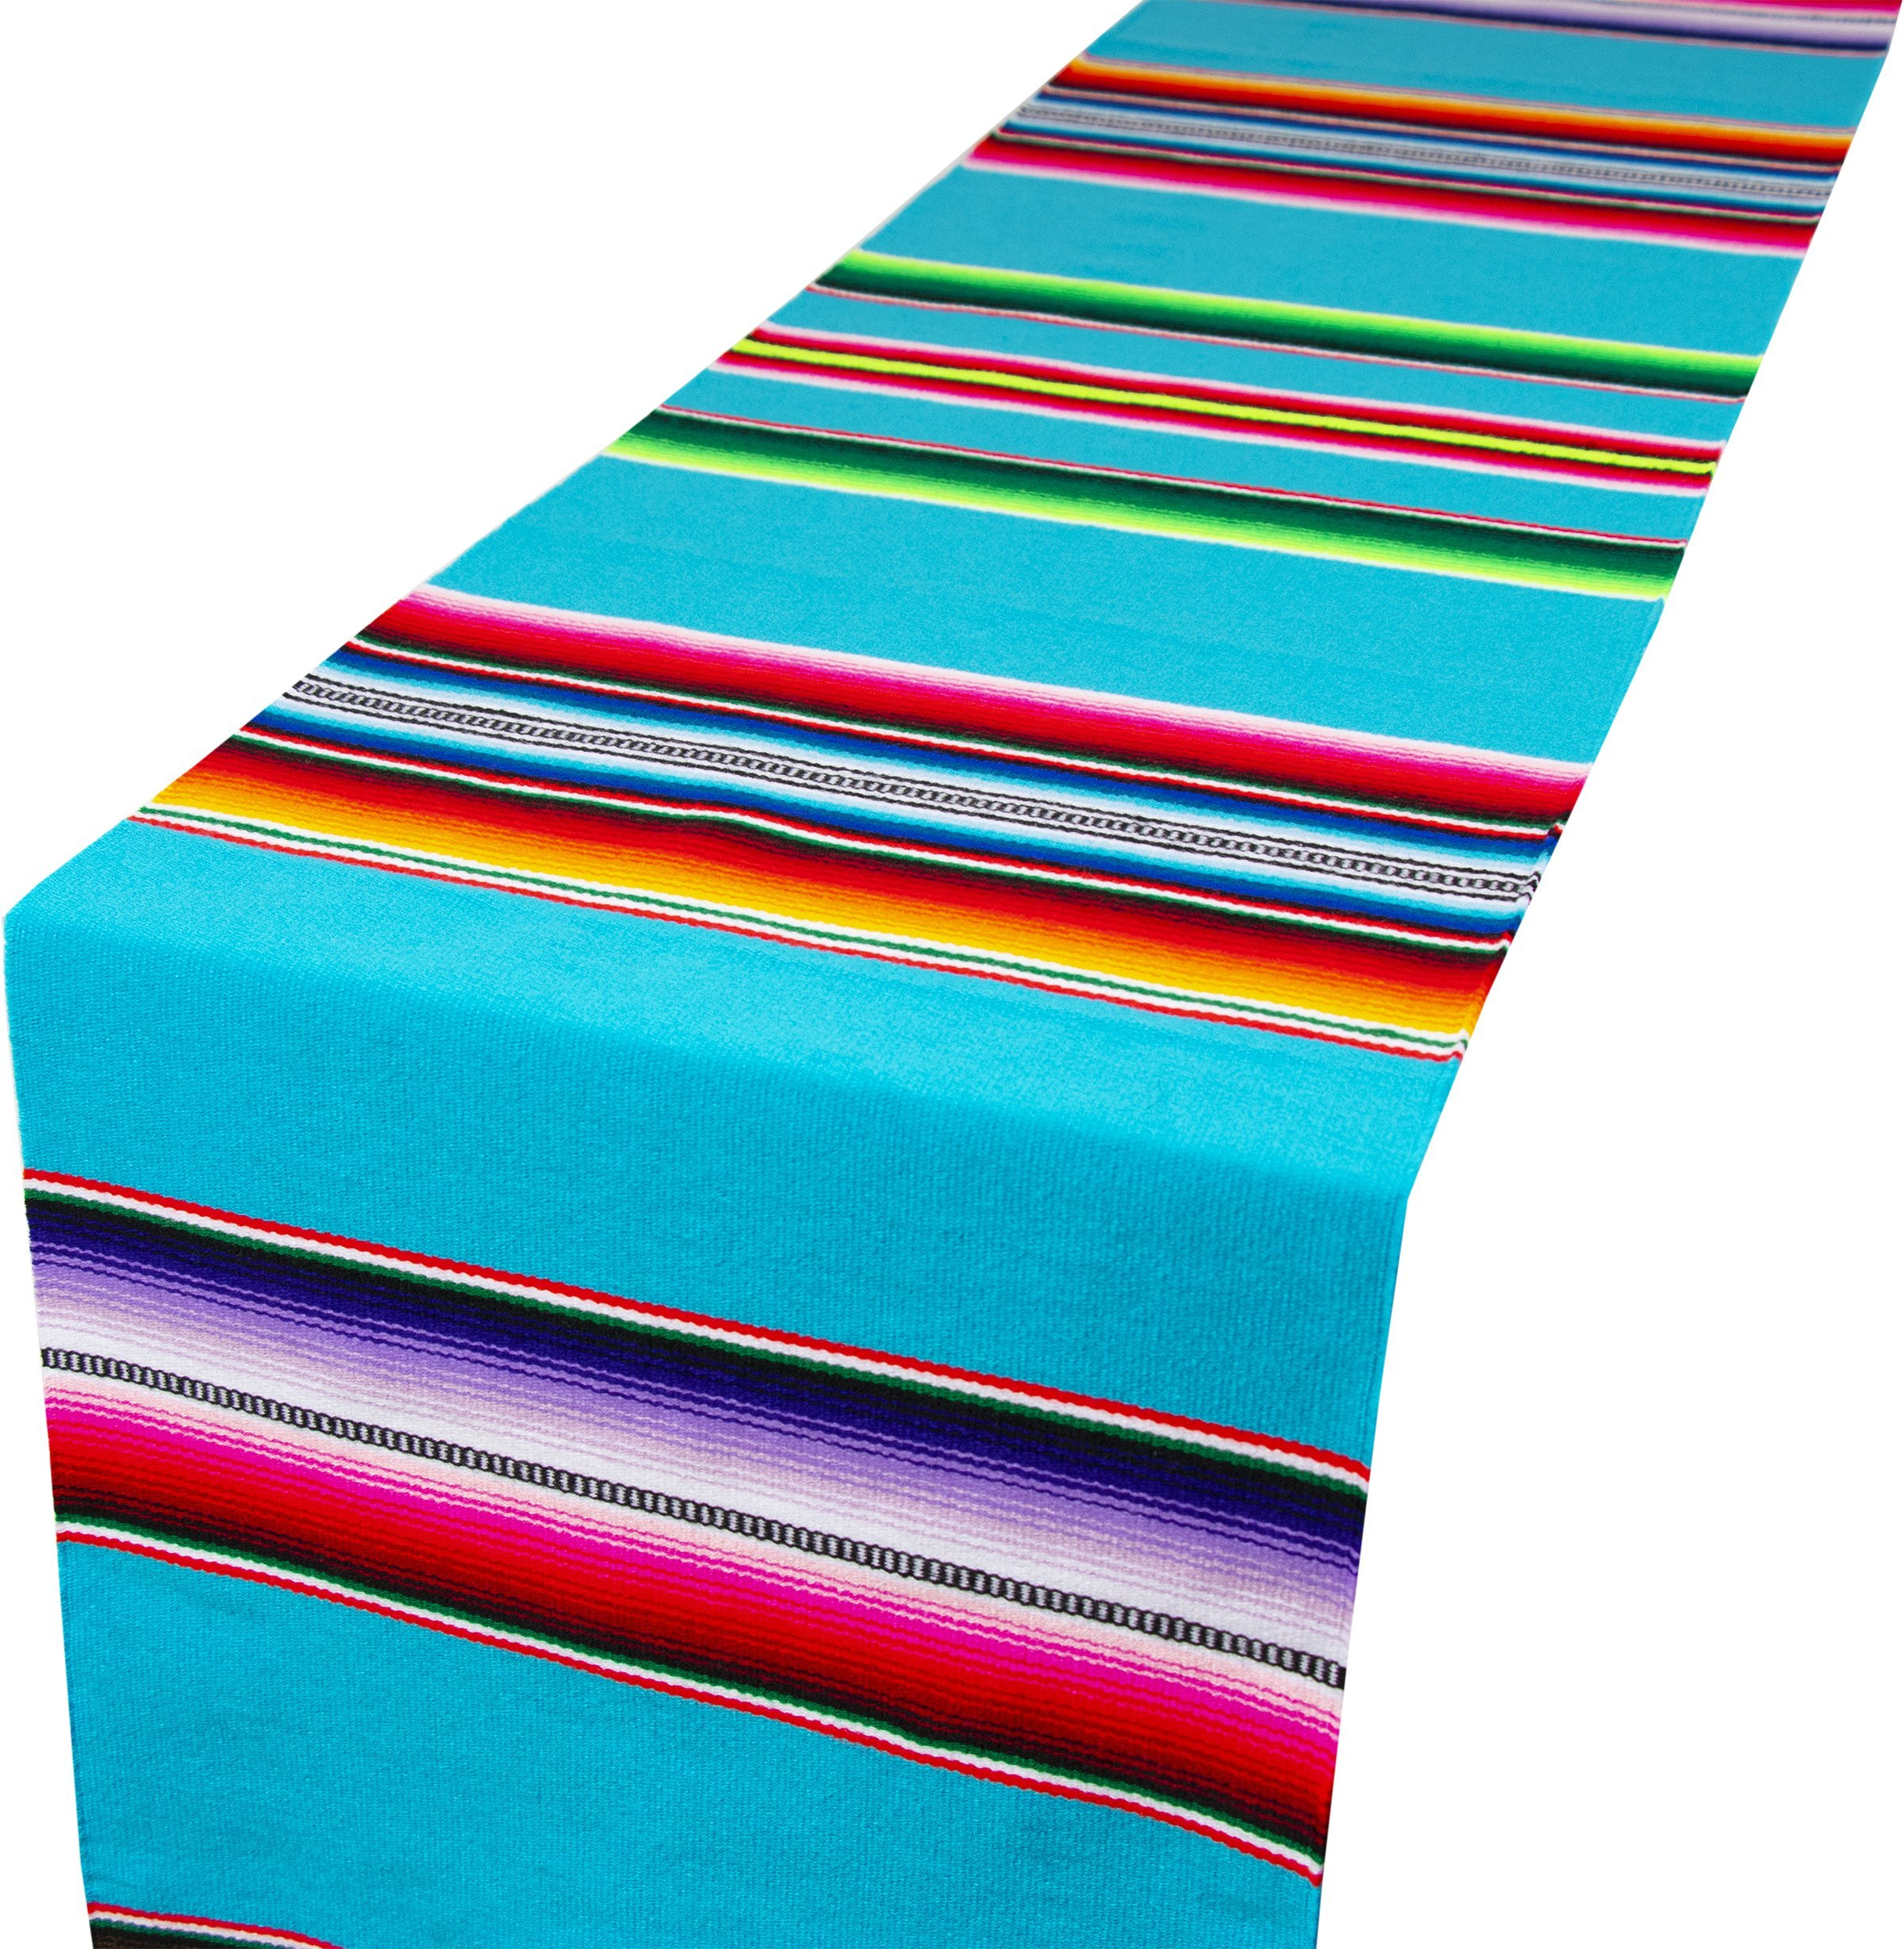 Genuine Mexican Premium Handwoven Bright MexicanTable Runner Saltillo Serape Colorful Striped Sarape 60'' x 12'' (Turquoise) by Threads West (Image #5)